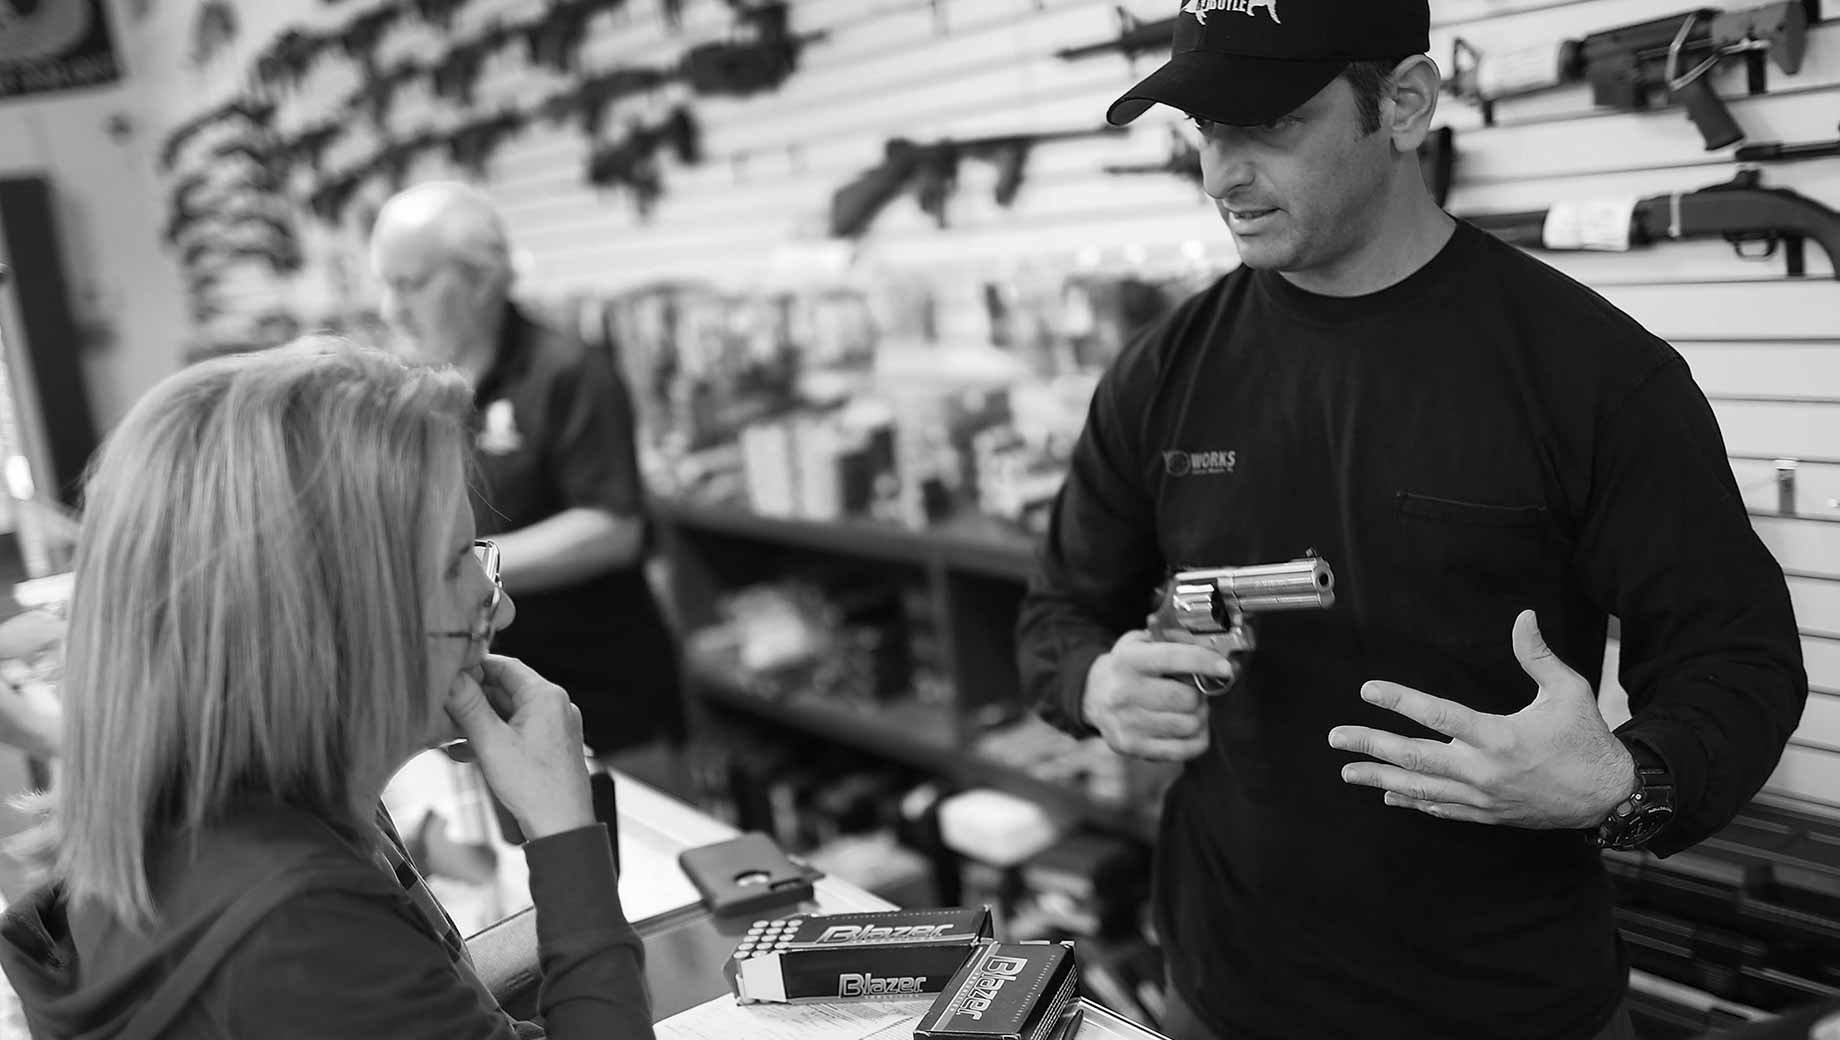 Six in 10 Americans Support Stricter Gun Laws